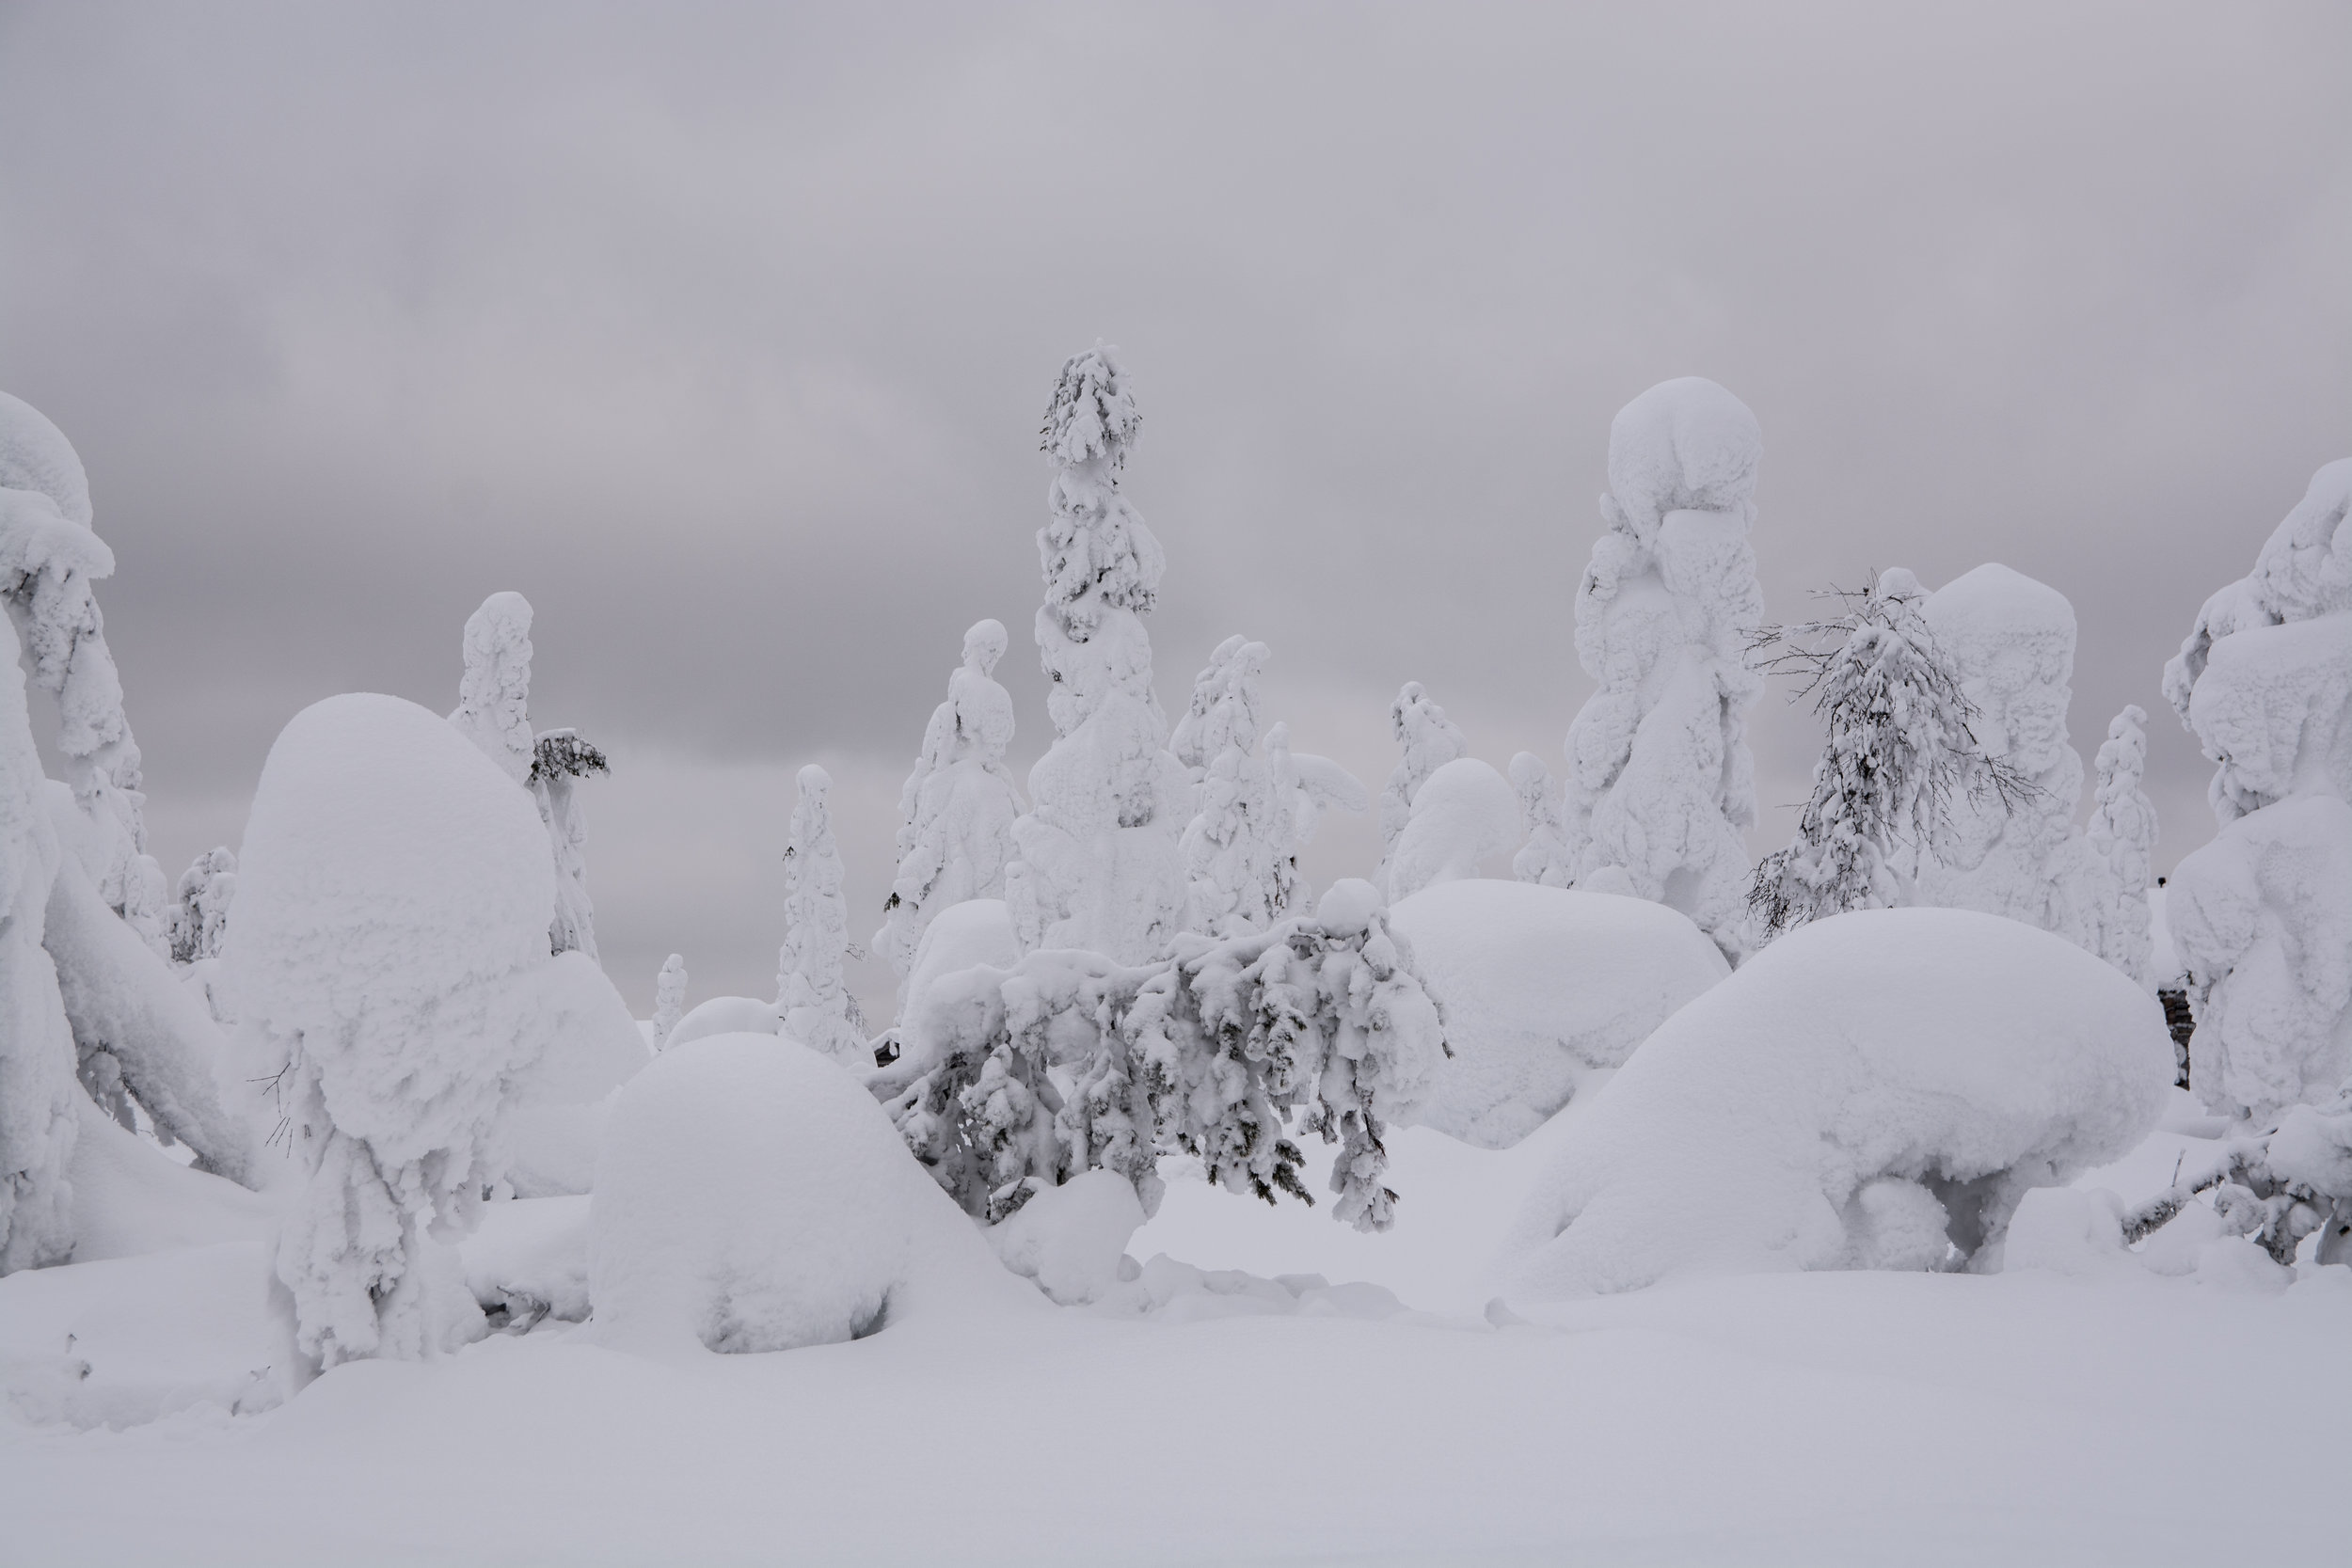 At this point you're probably tired of seeing more snow trees, but this is what northern Finland looks like. Snow, and trees.